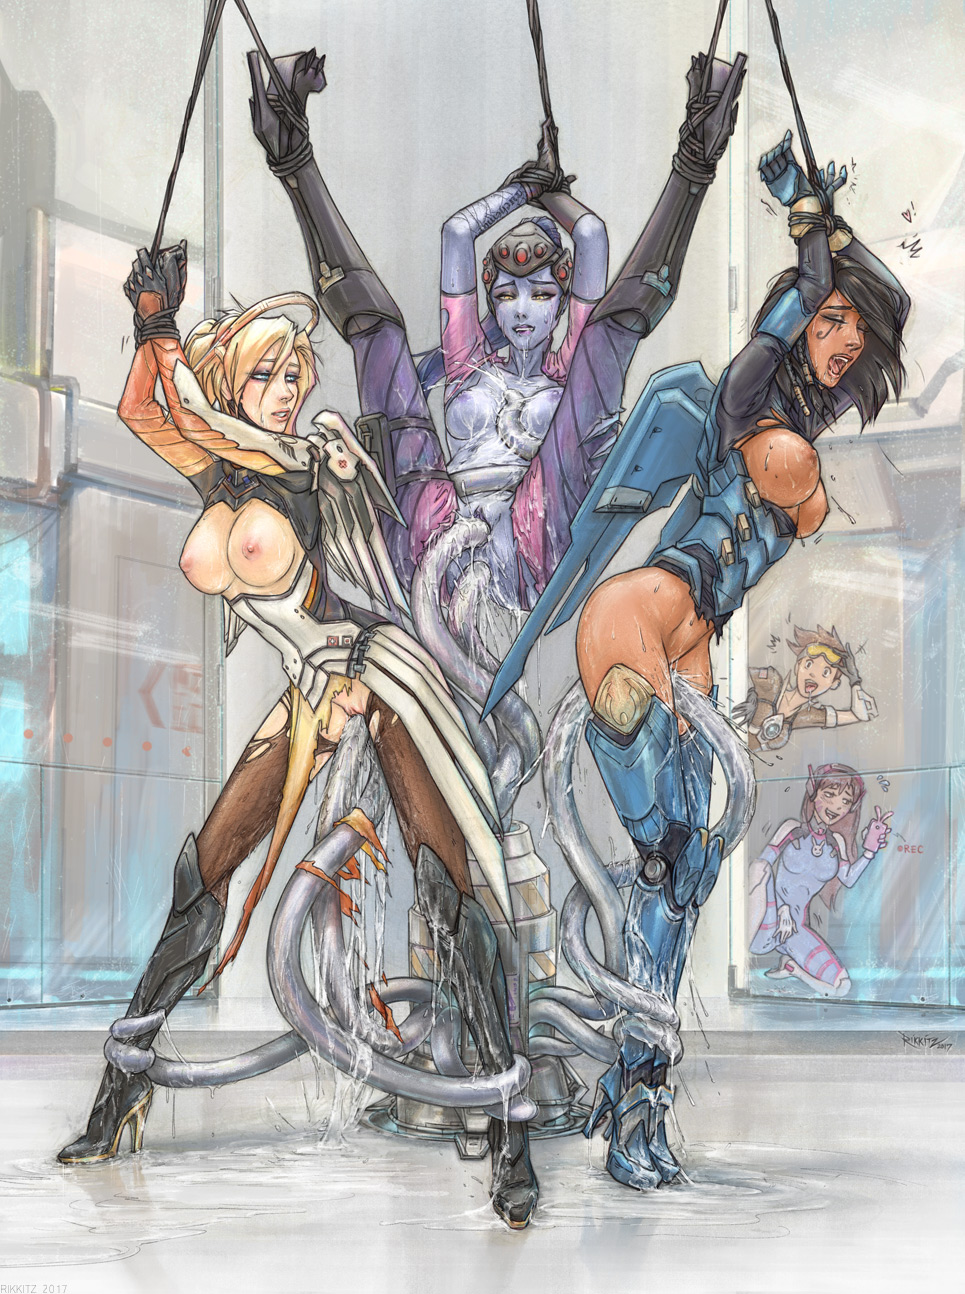 2448158 - D.Va Mercy Overlook Pharah Rikkitz Tracer Widowmaker